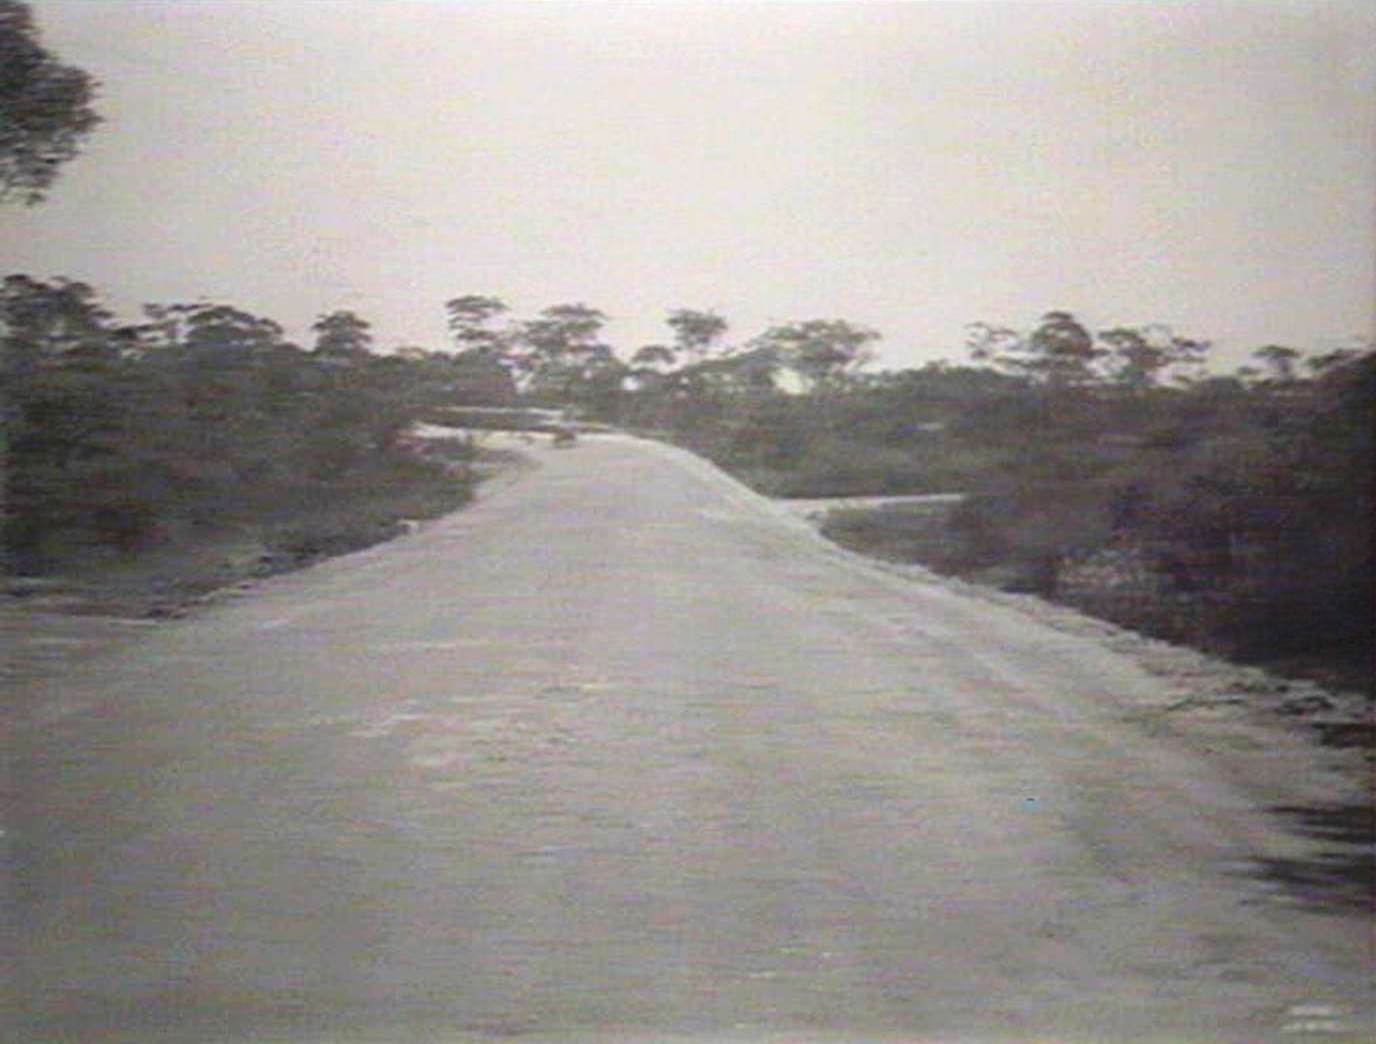 hight resolution of pittwater rd after construction looking towards pacific highway august 1935 image no d1 21454h courtesy state library of nsw